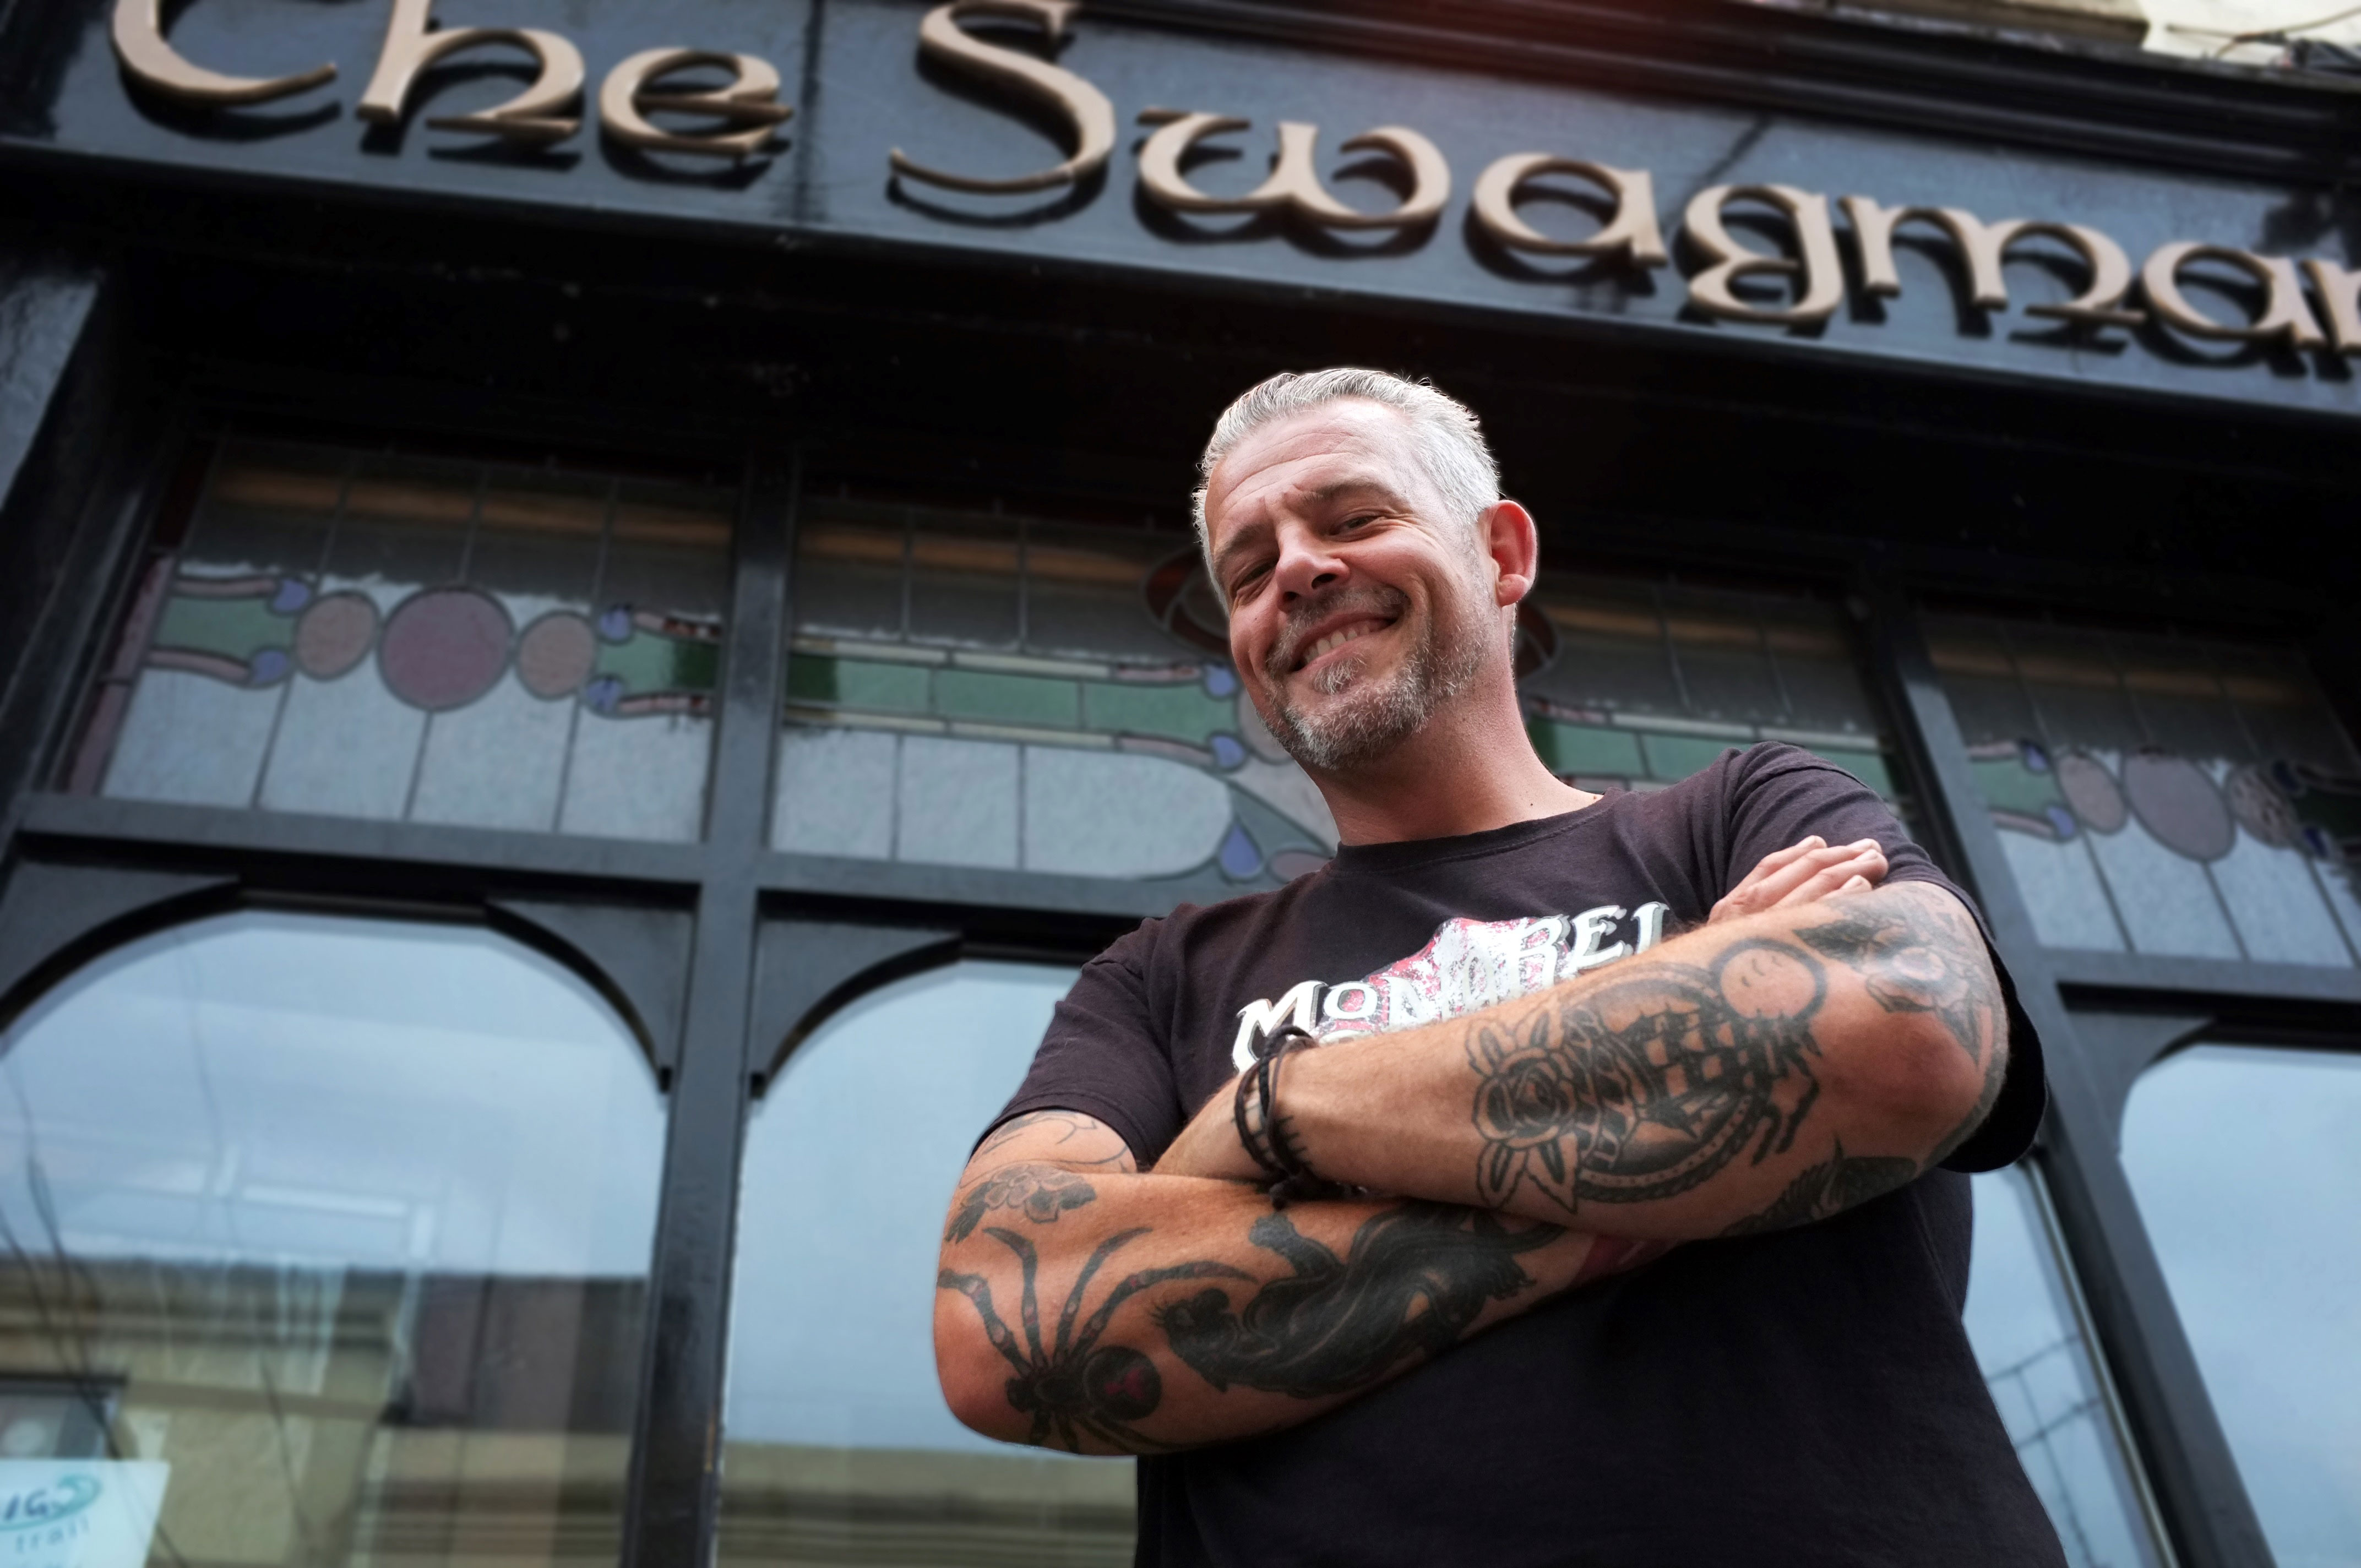 Faces of the Sligo Food Trail: Dale Barber, The Swagman